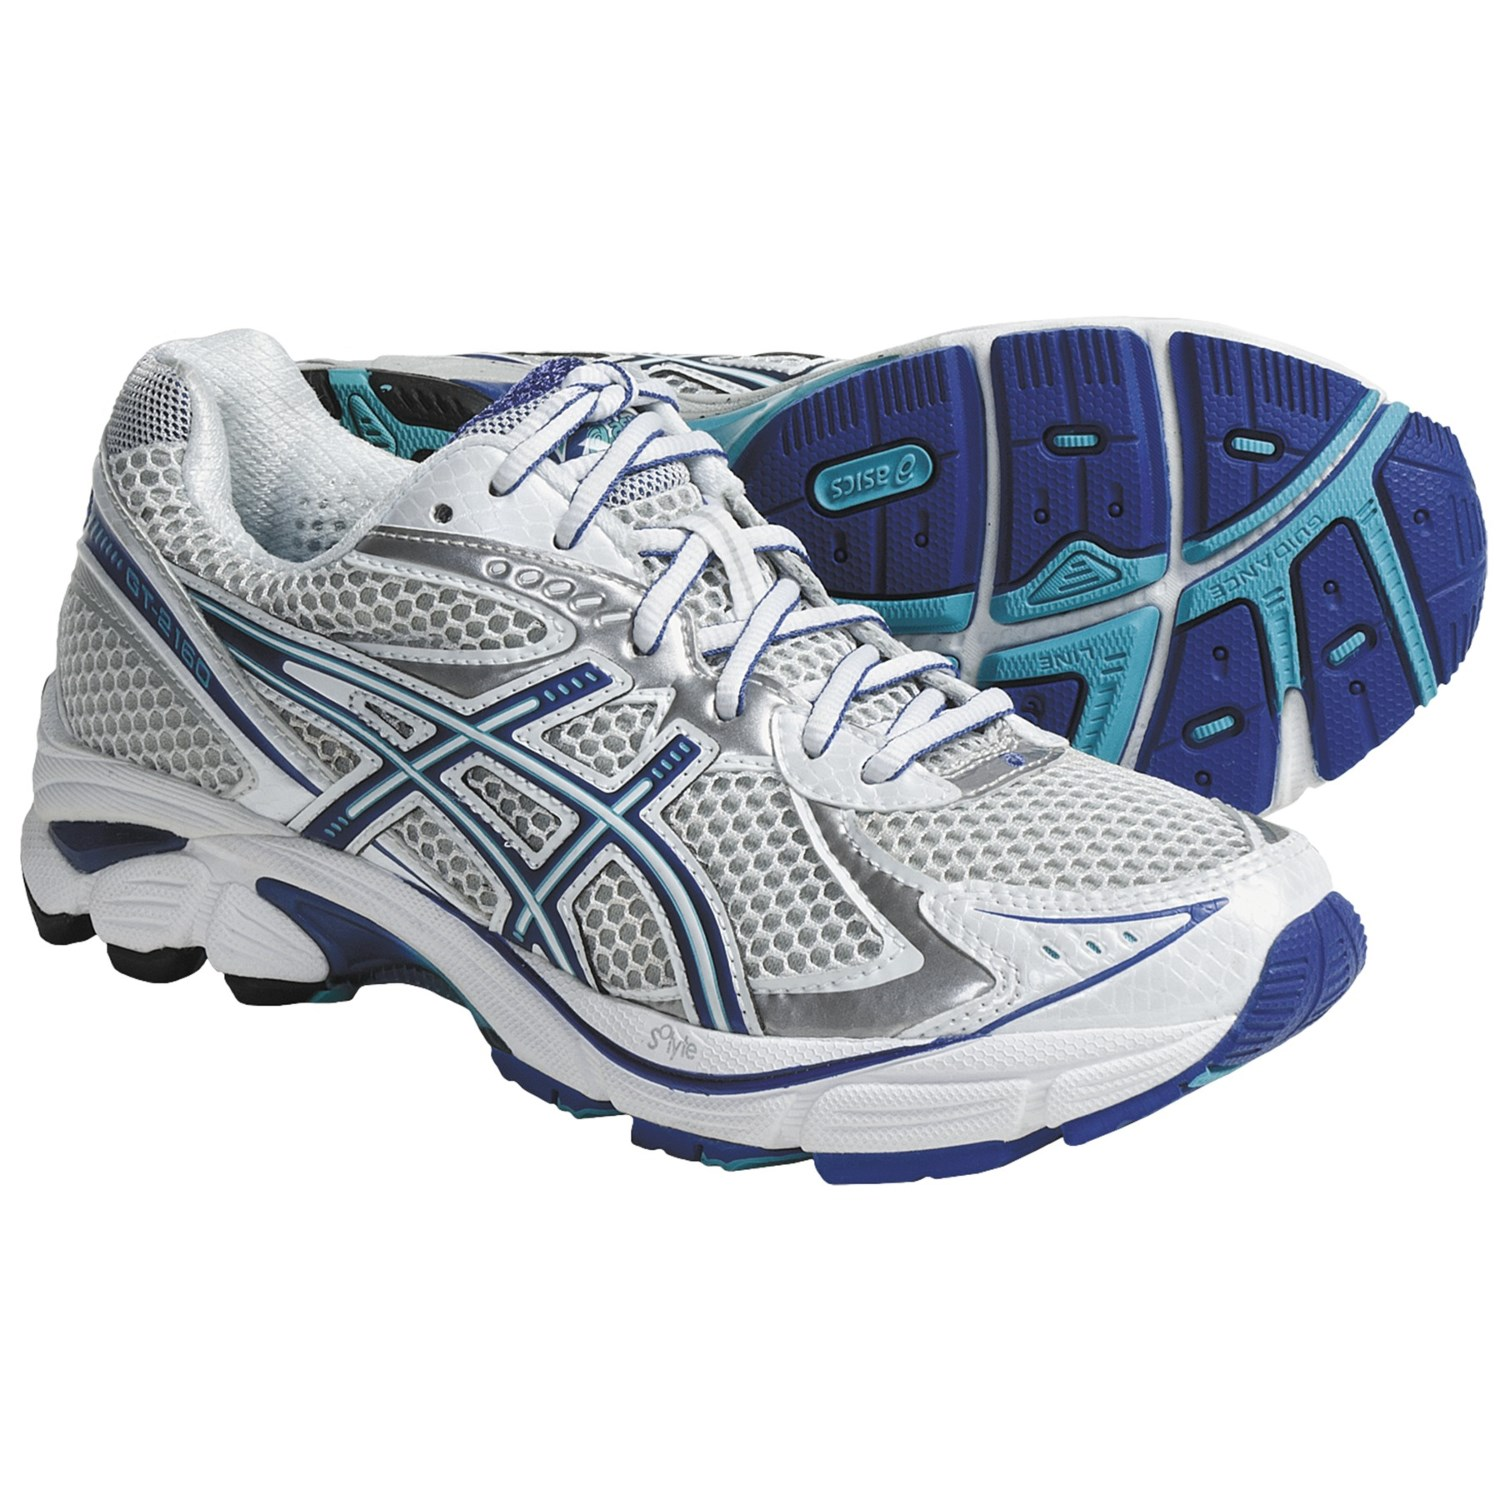 Asics GT-2160 Running Shoes (For Women) in White/Electric Blue